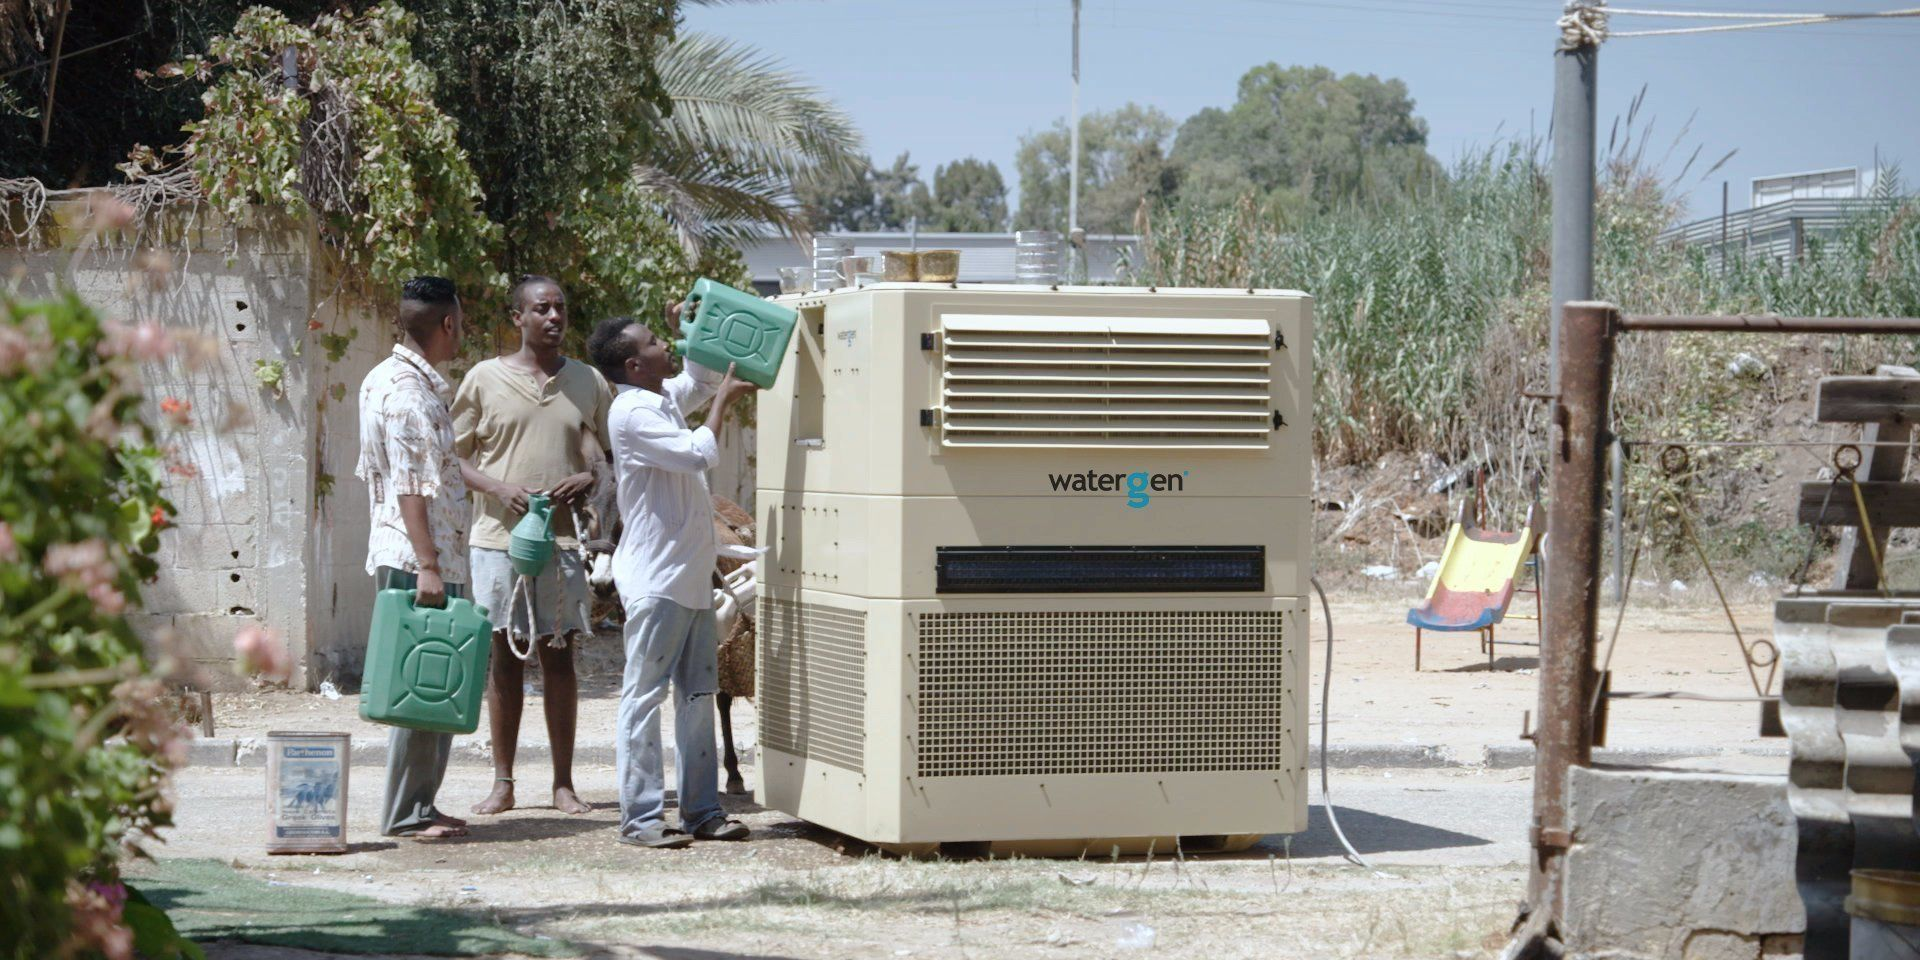 Water-Gen has shifted its focus to providing its technology to communities facing water scarcity.